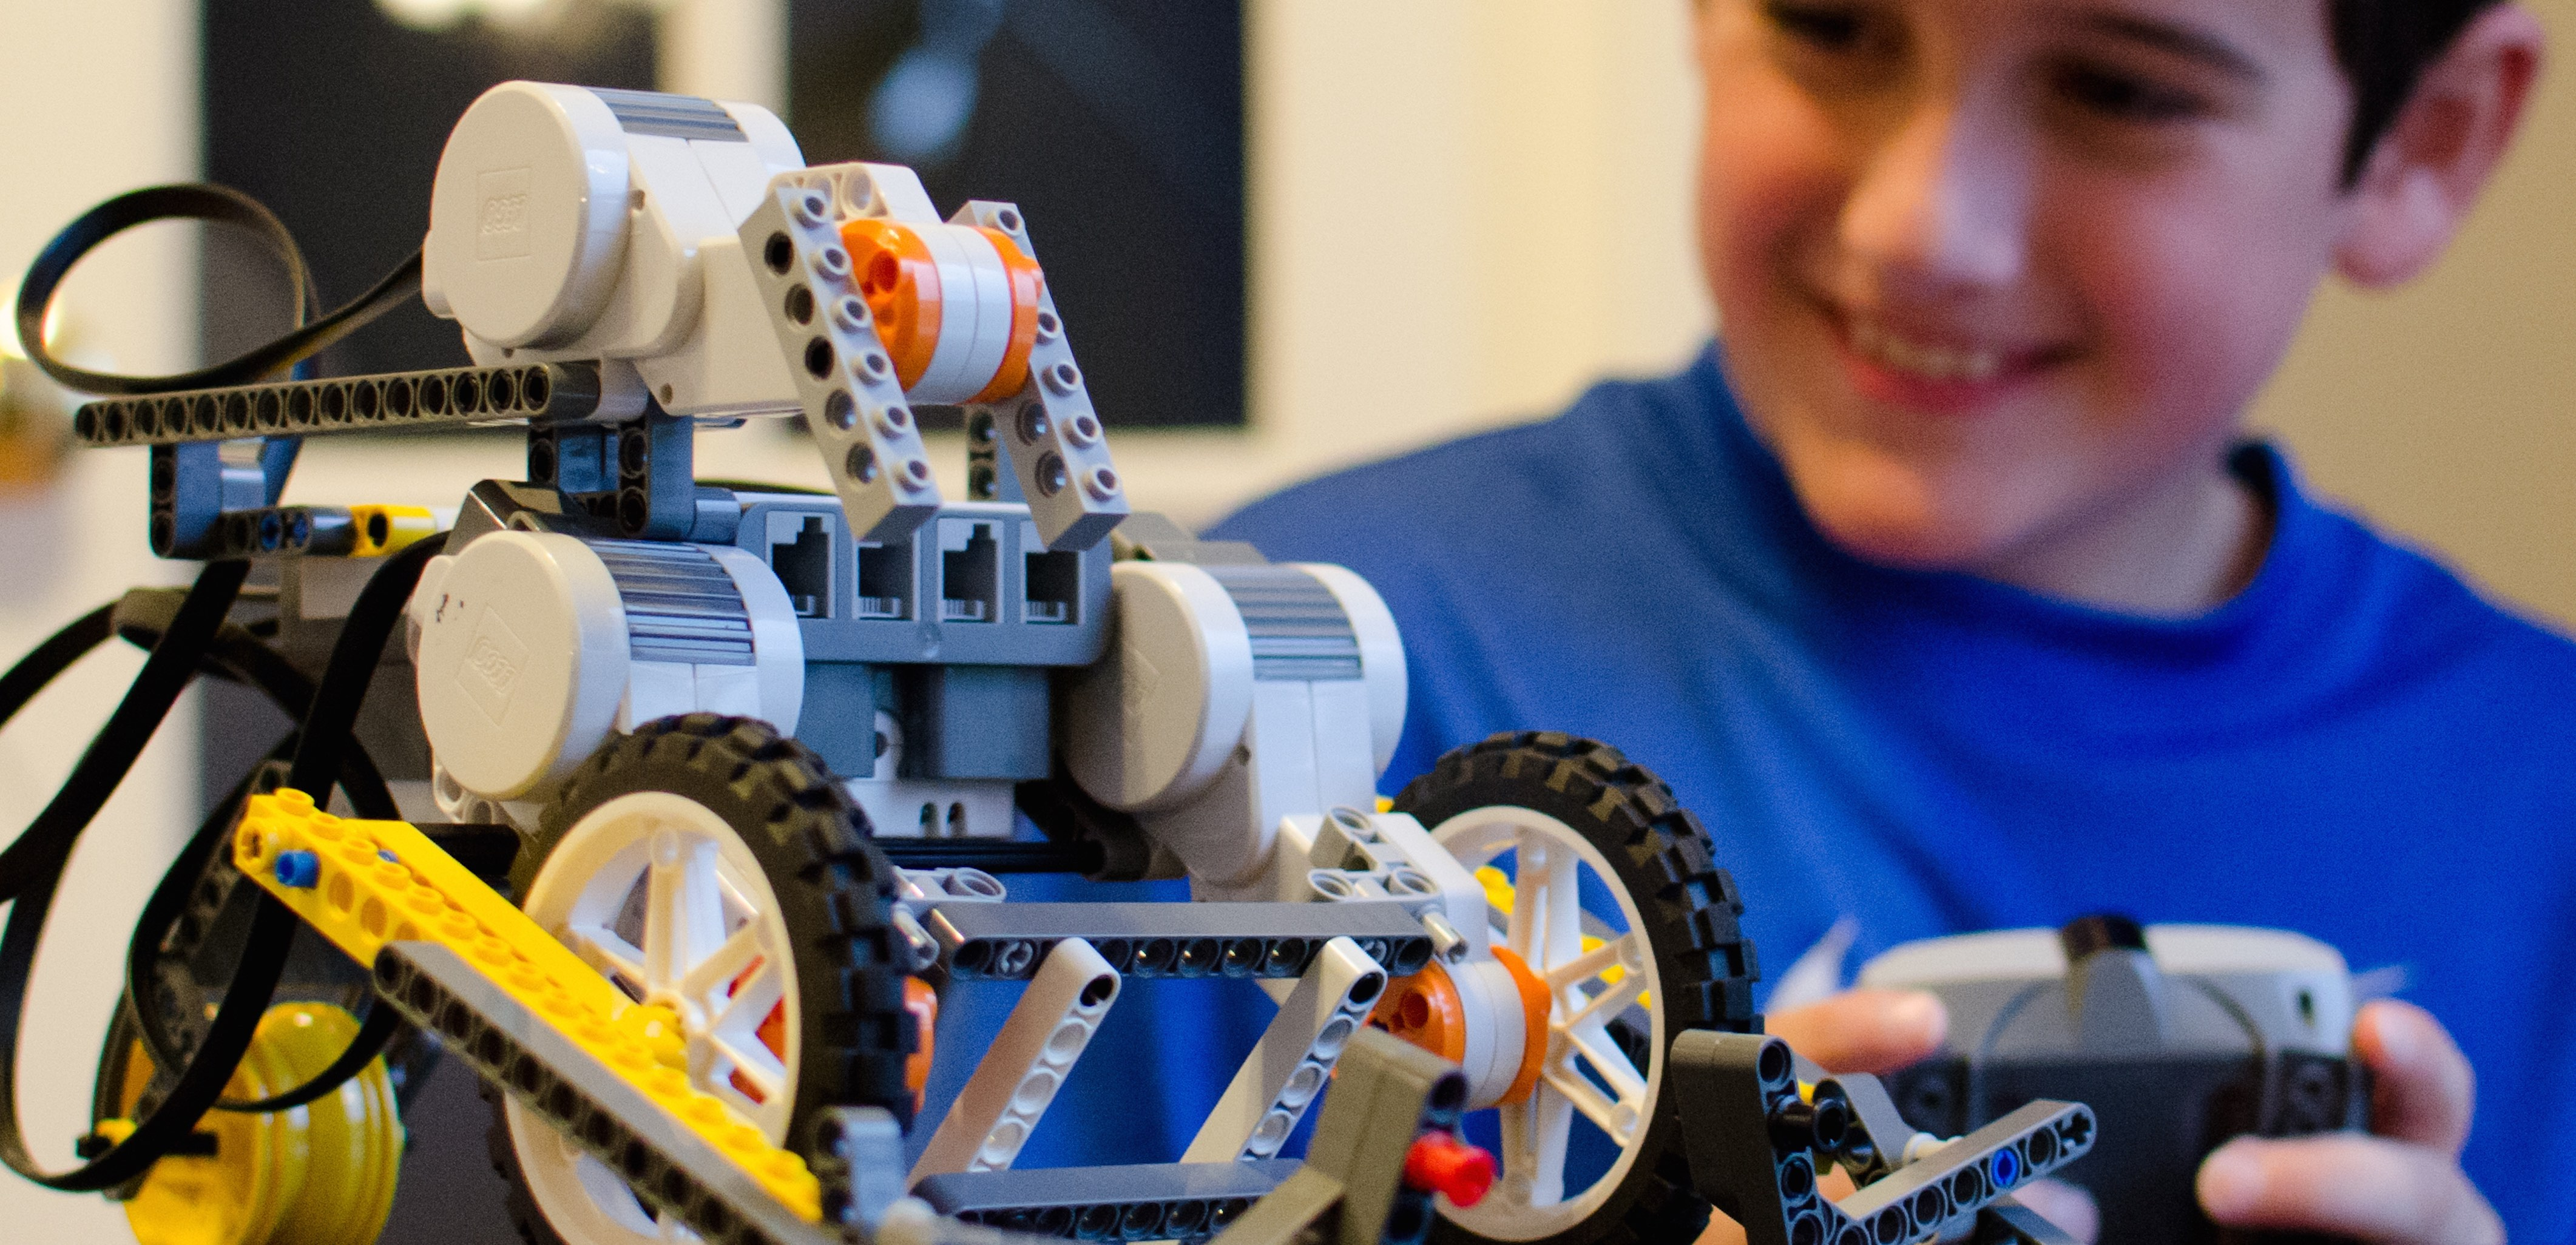 Lego Robotics Classes & Camps